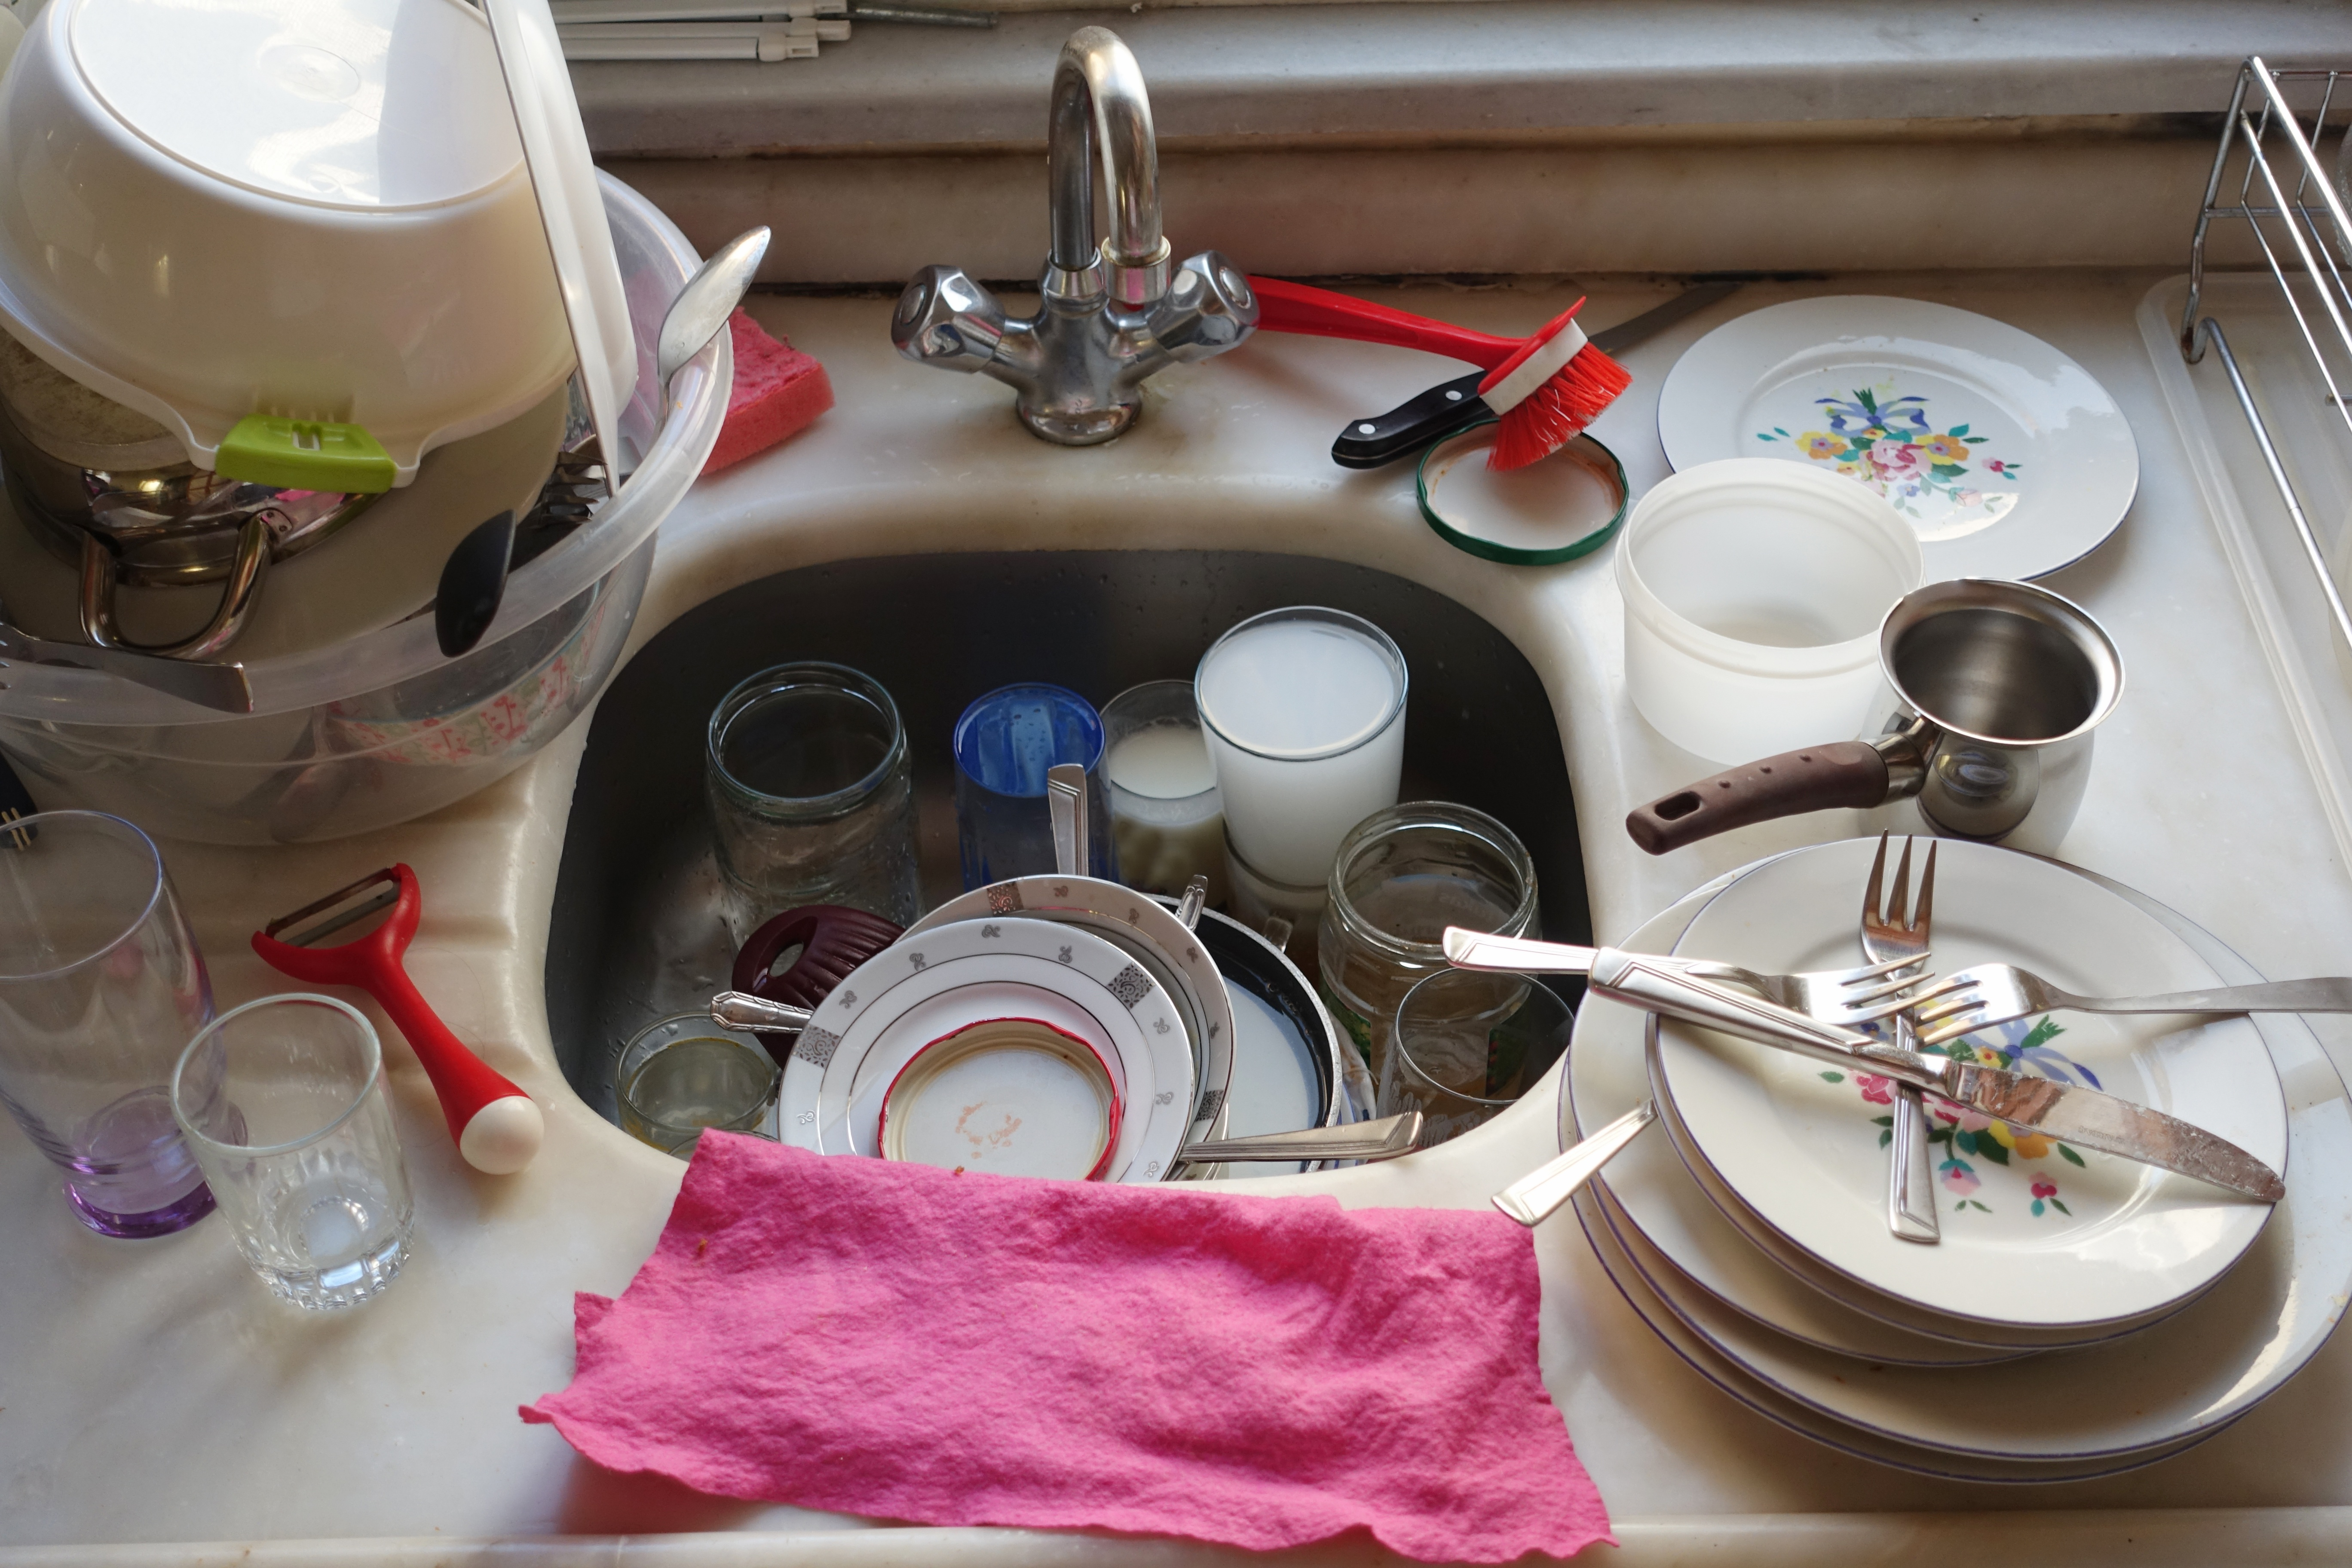 dirty dishes.jpg